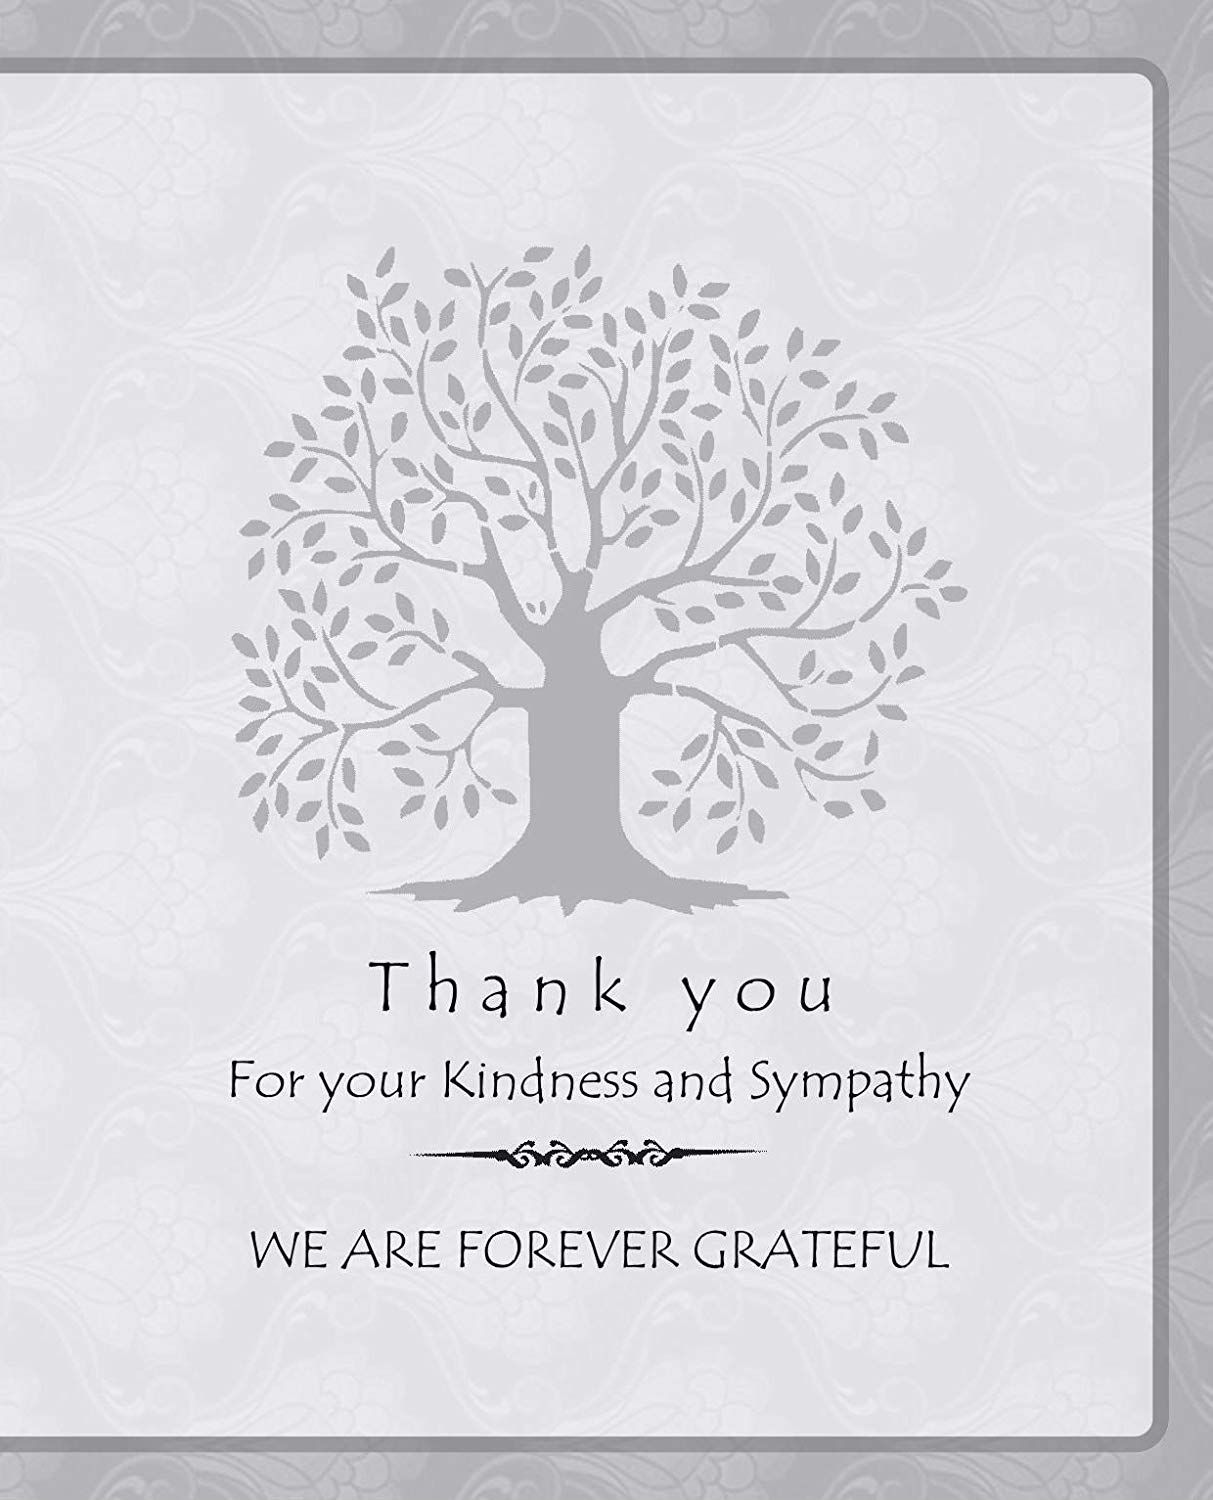 20 Celebration of Life Funeral Thank You Cards with